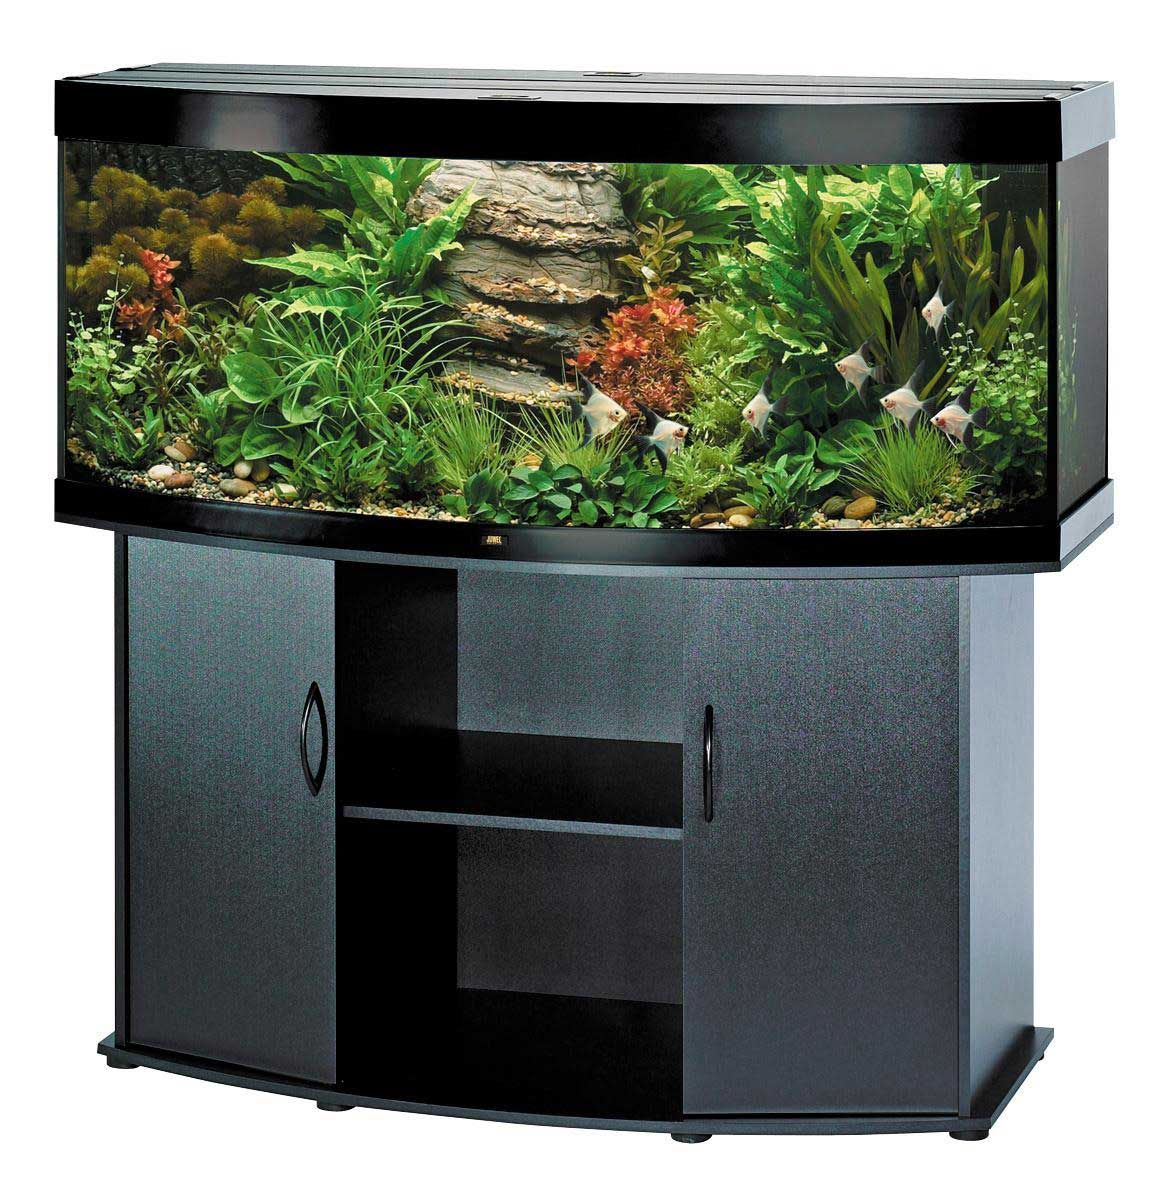 Fish Aquarium Design photo | design aquarium | Pinterest | Fish ...